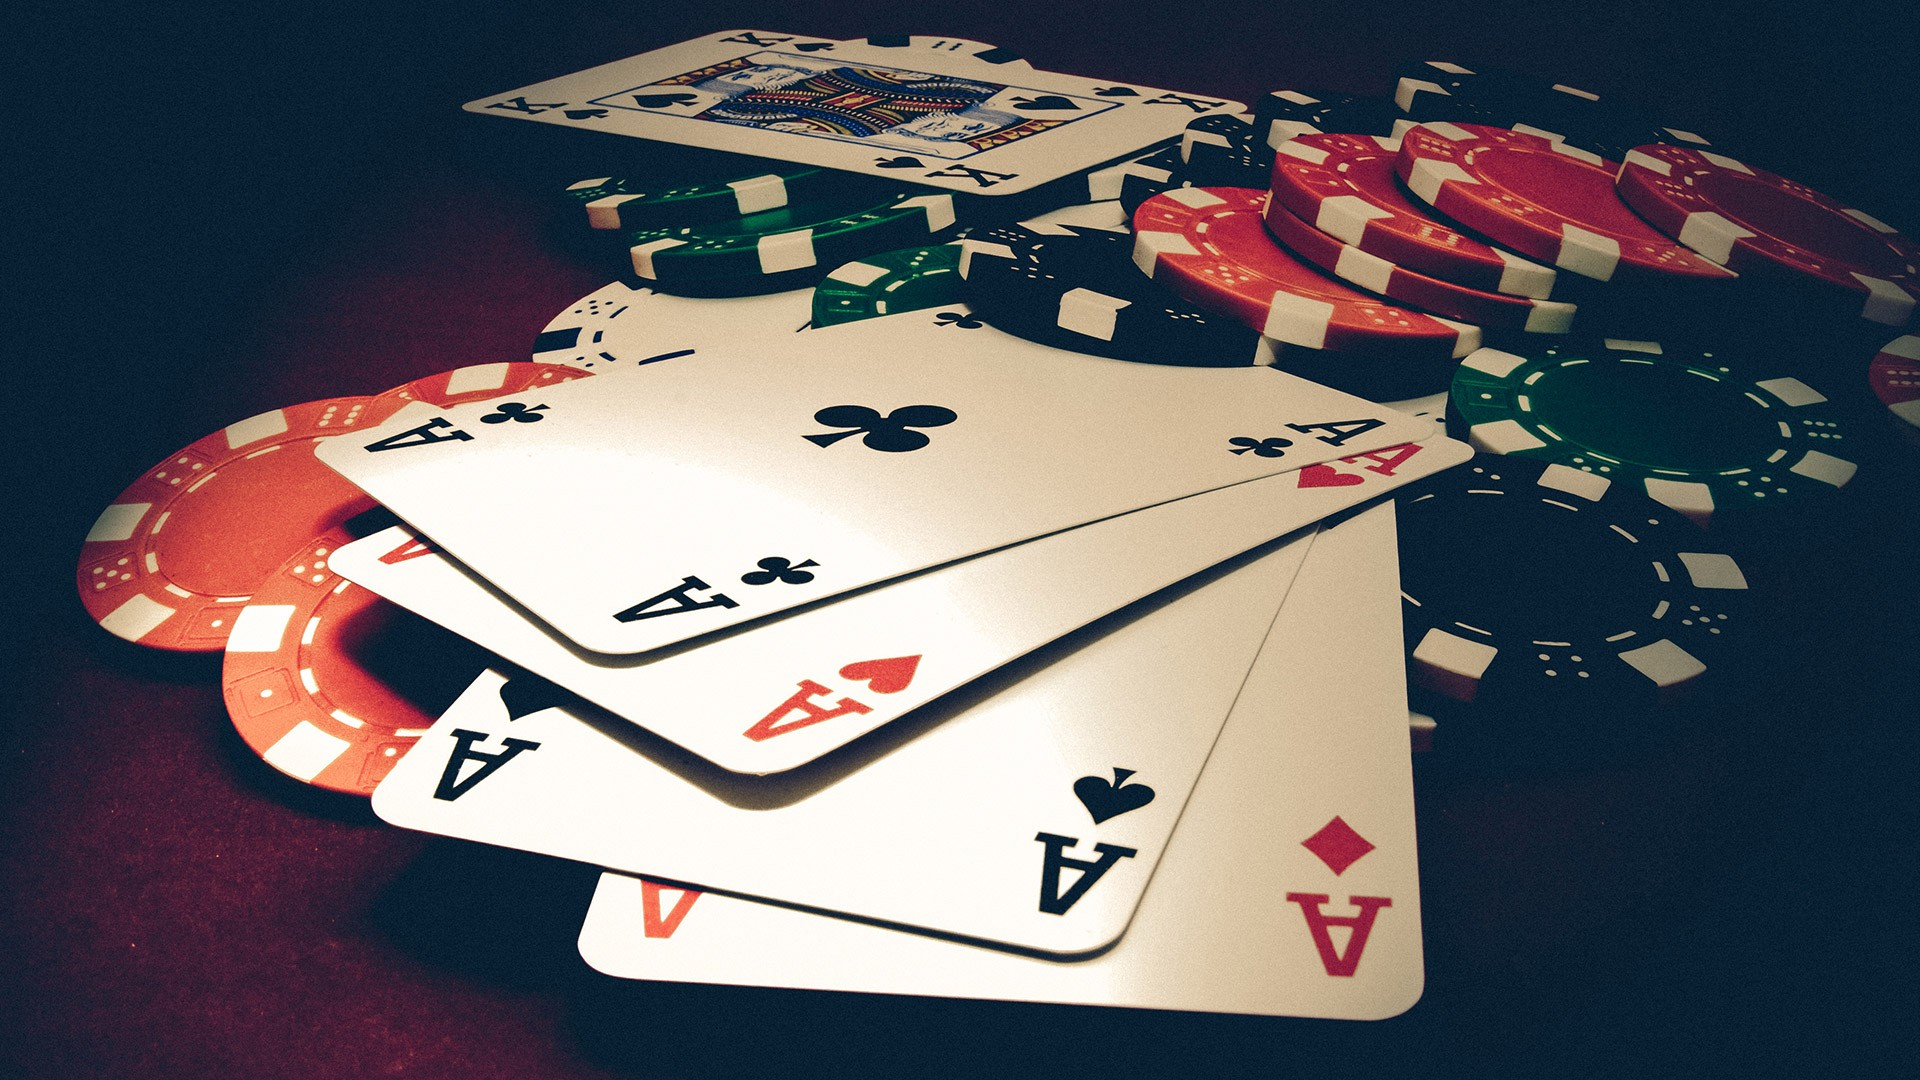 Enjoy the online casino games and earn the rewards points